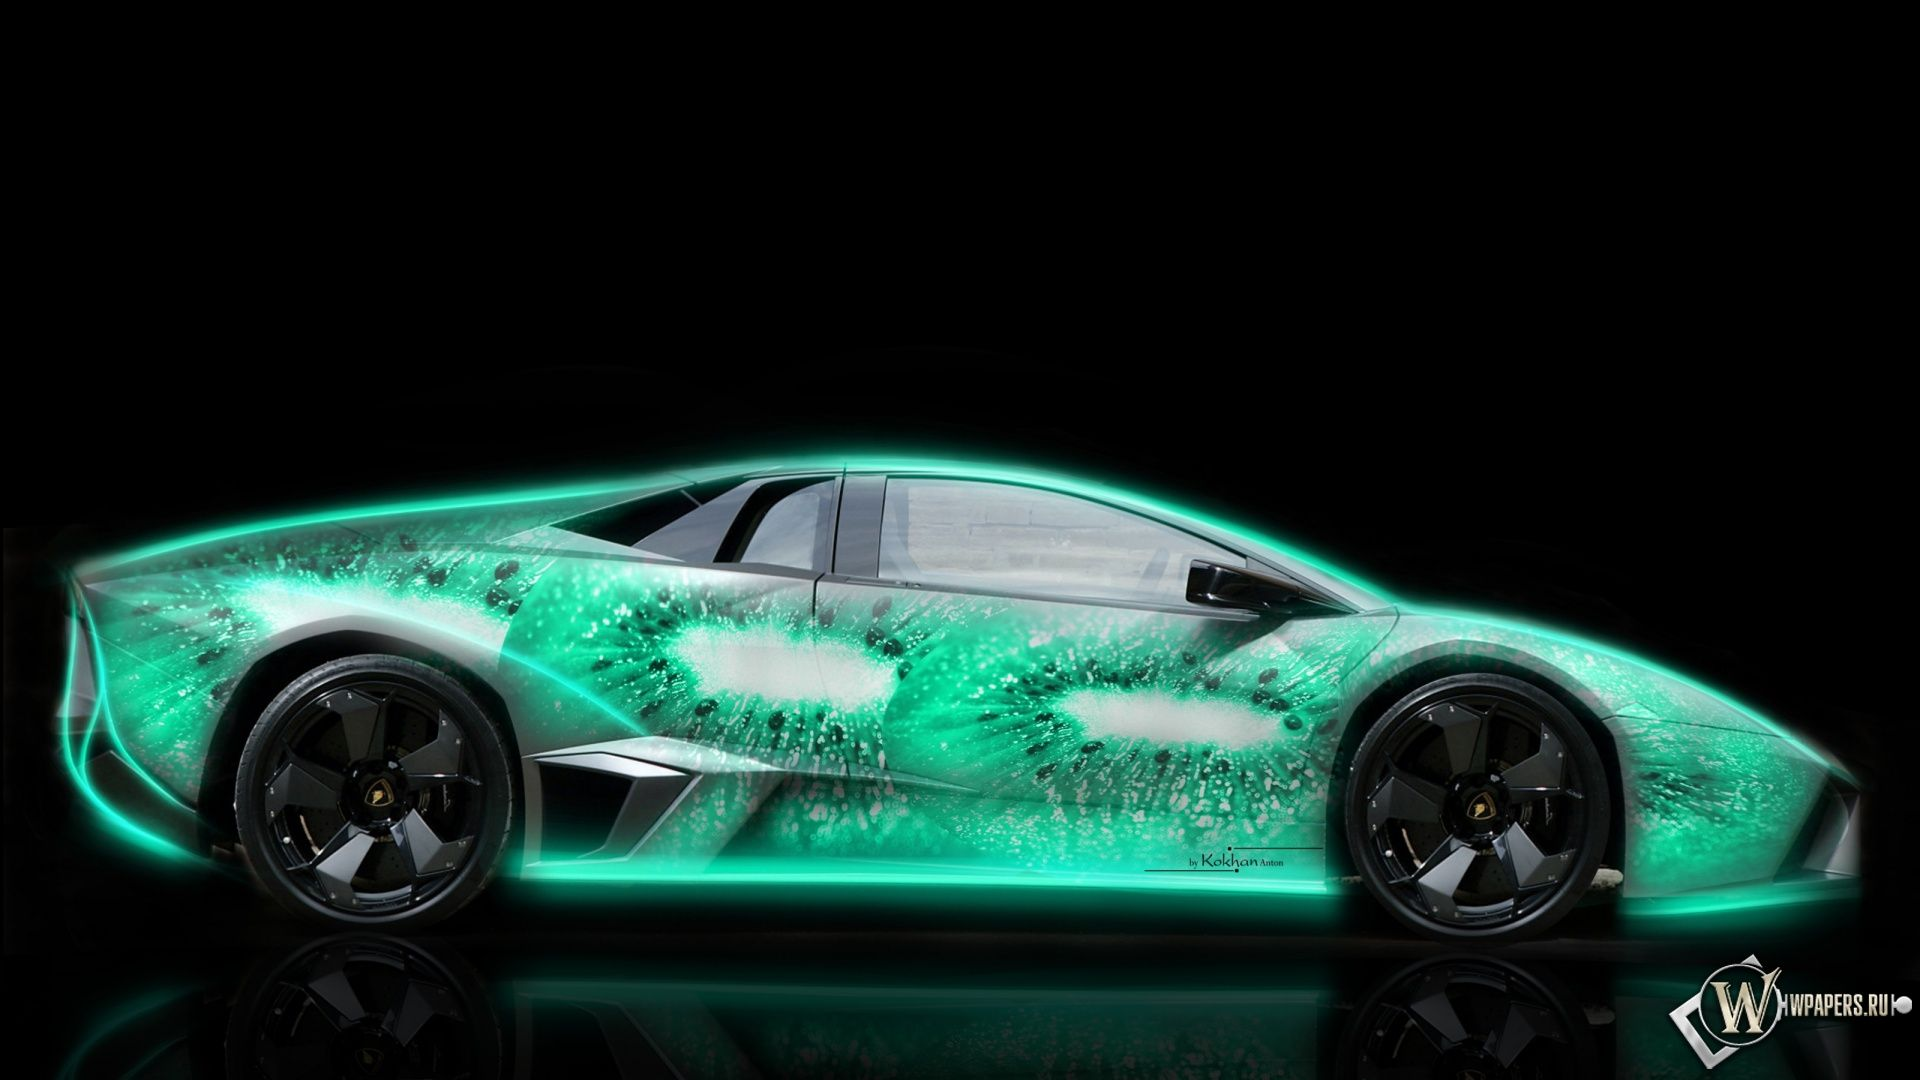 Lamborghini With Neon Lights And Flames: Lamborghini gallardo ...